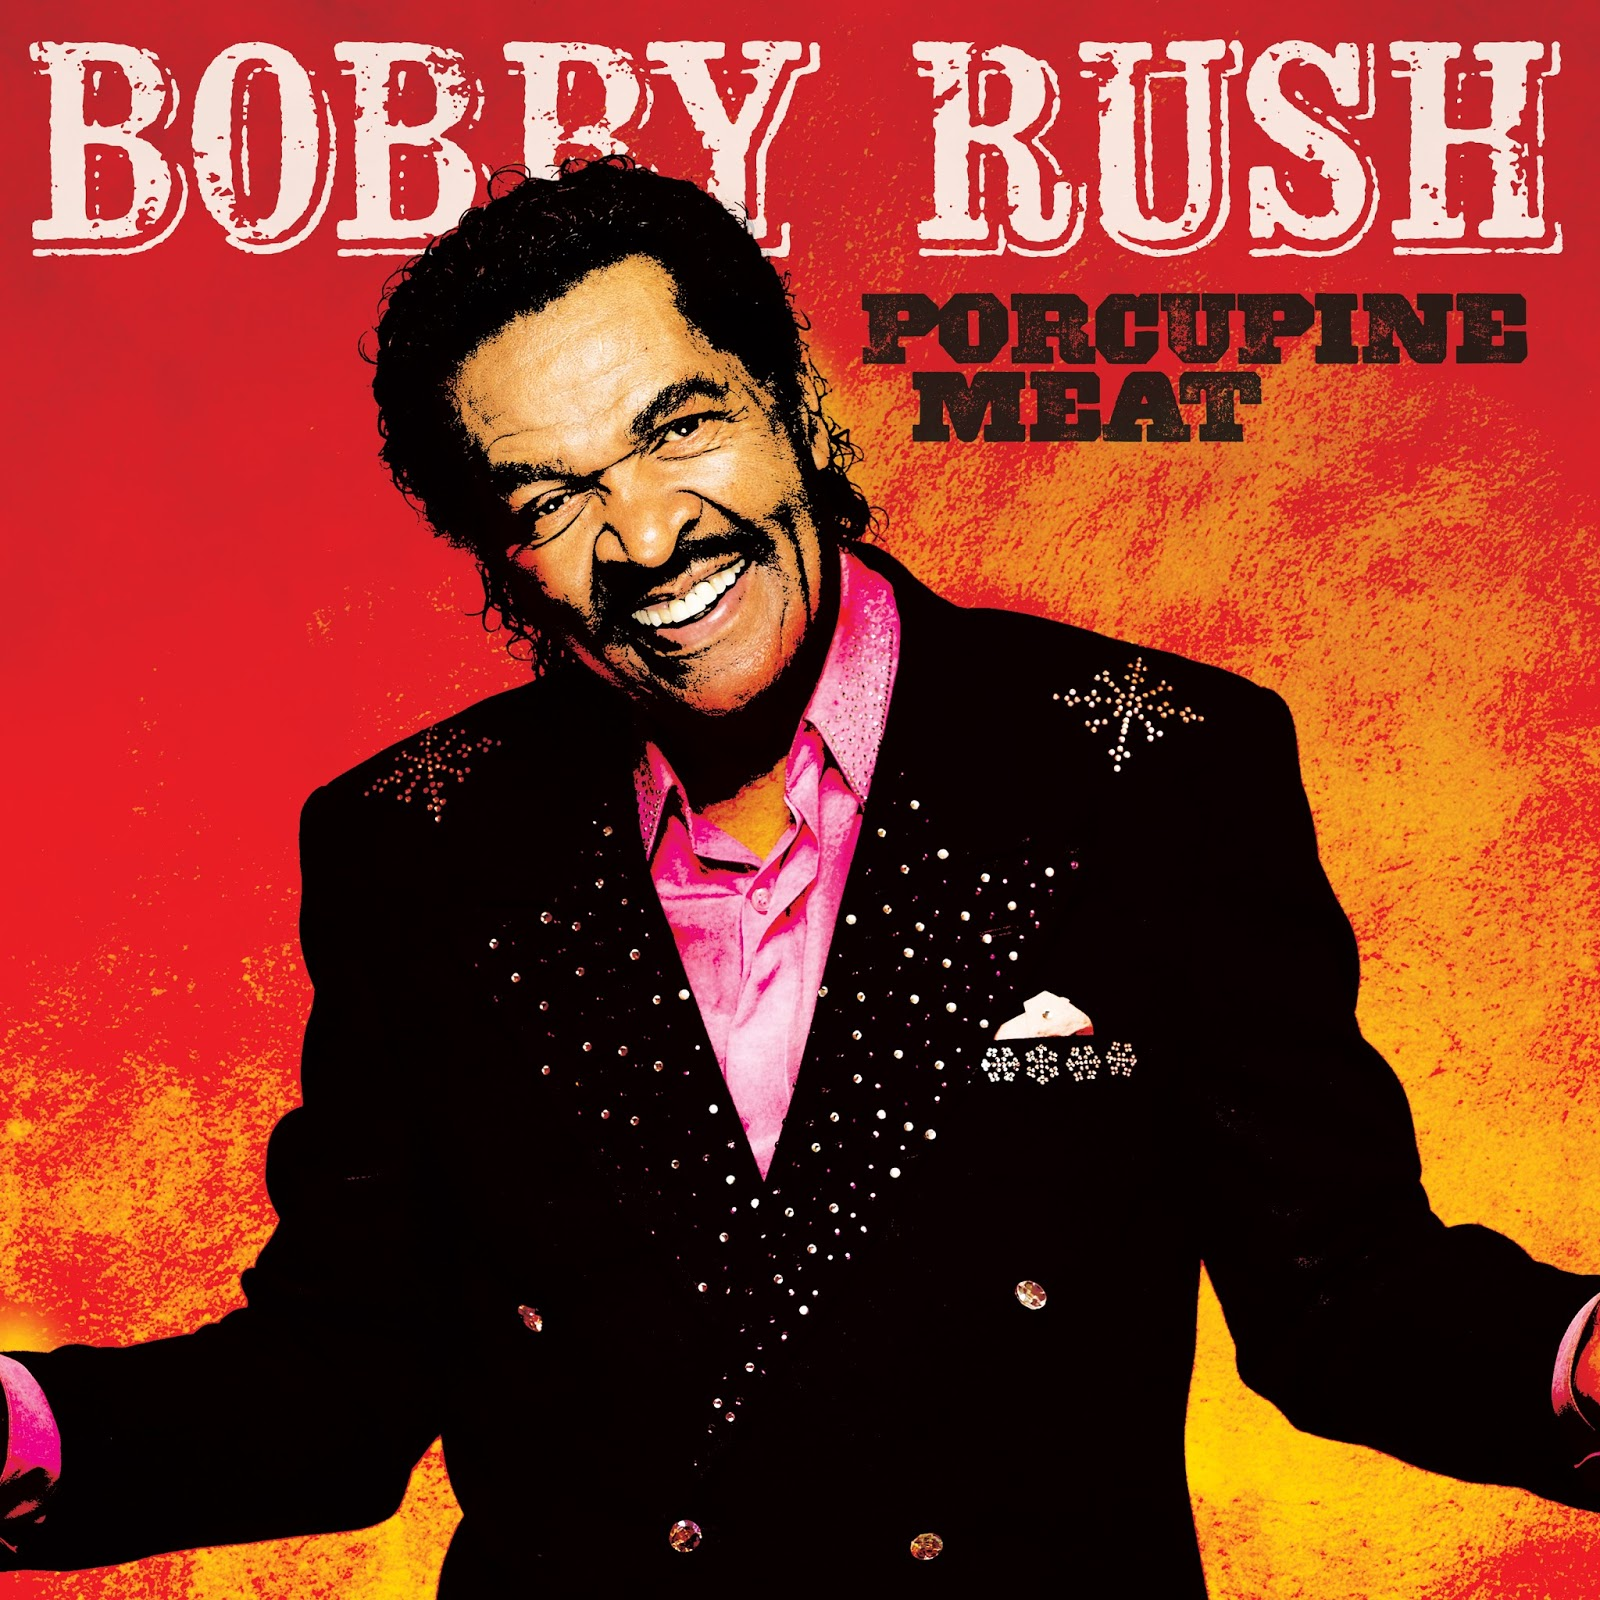 Lovely Bobby Rush Porcupine Meat Lp Hand Signed 2018 Vinyl Record Grammy Winner Autographs-original